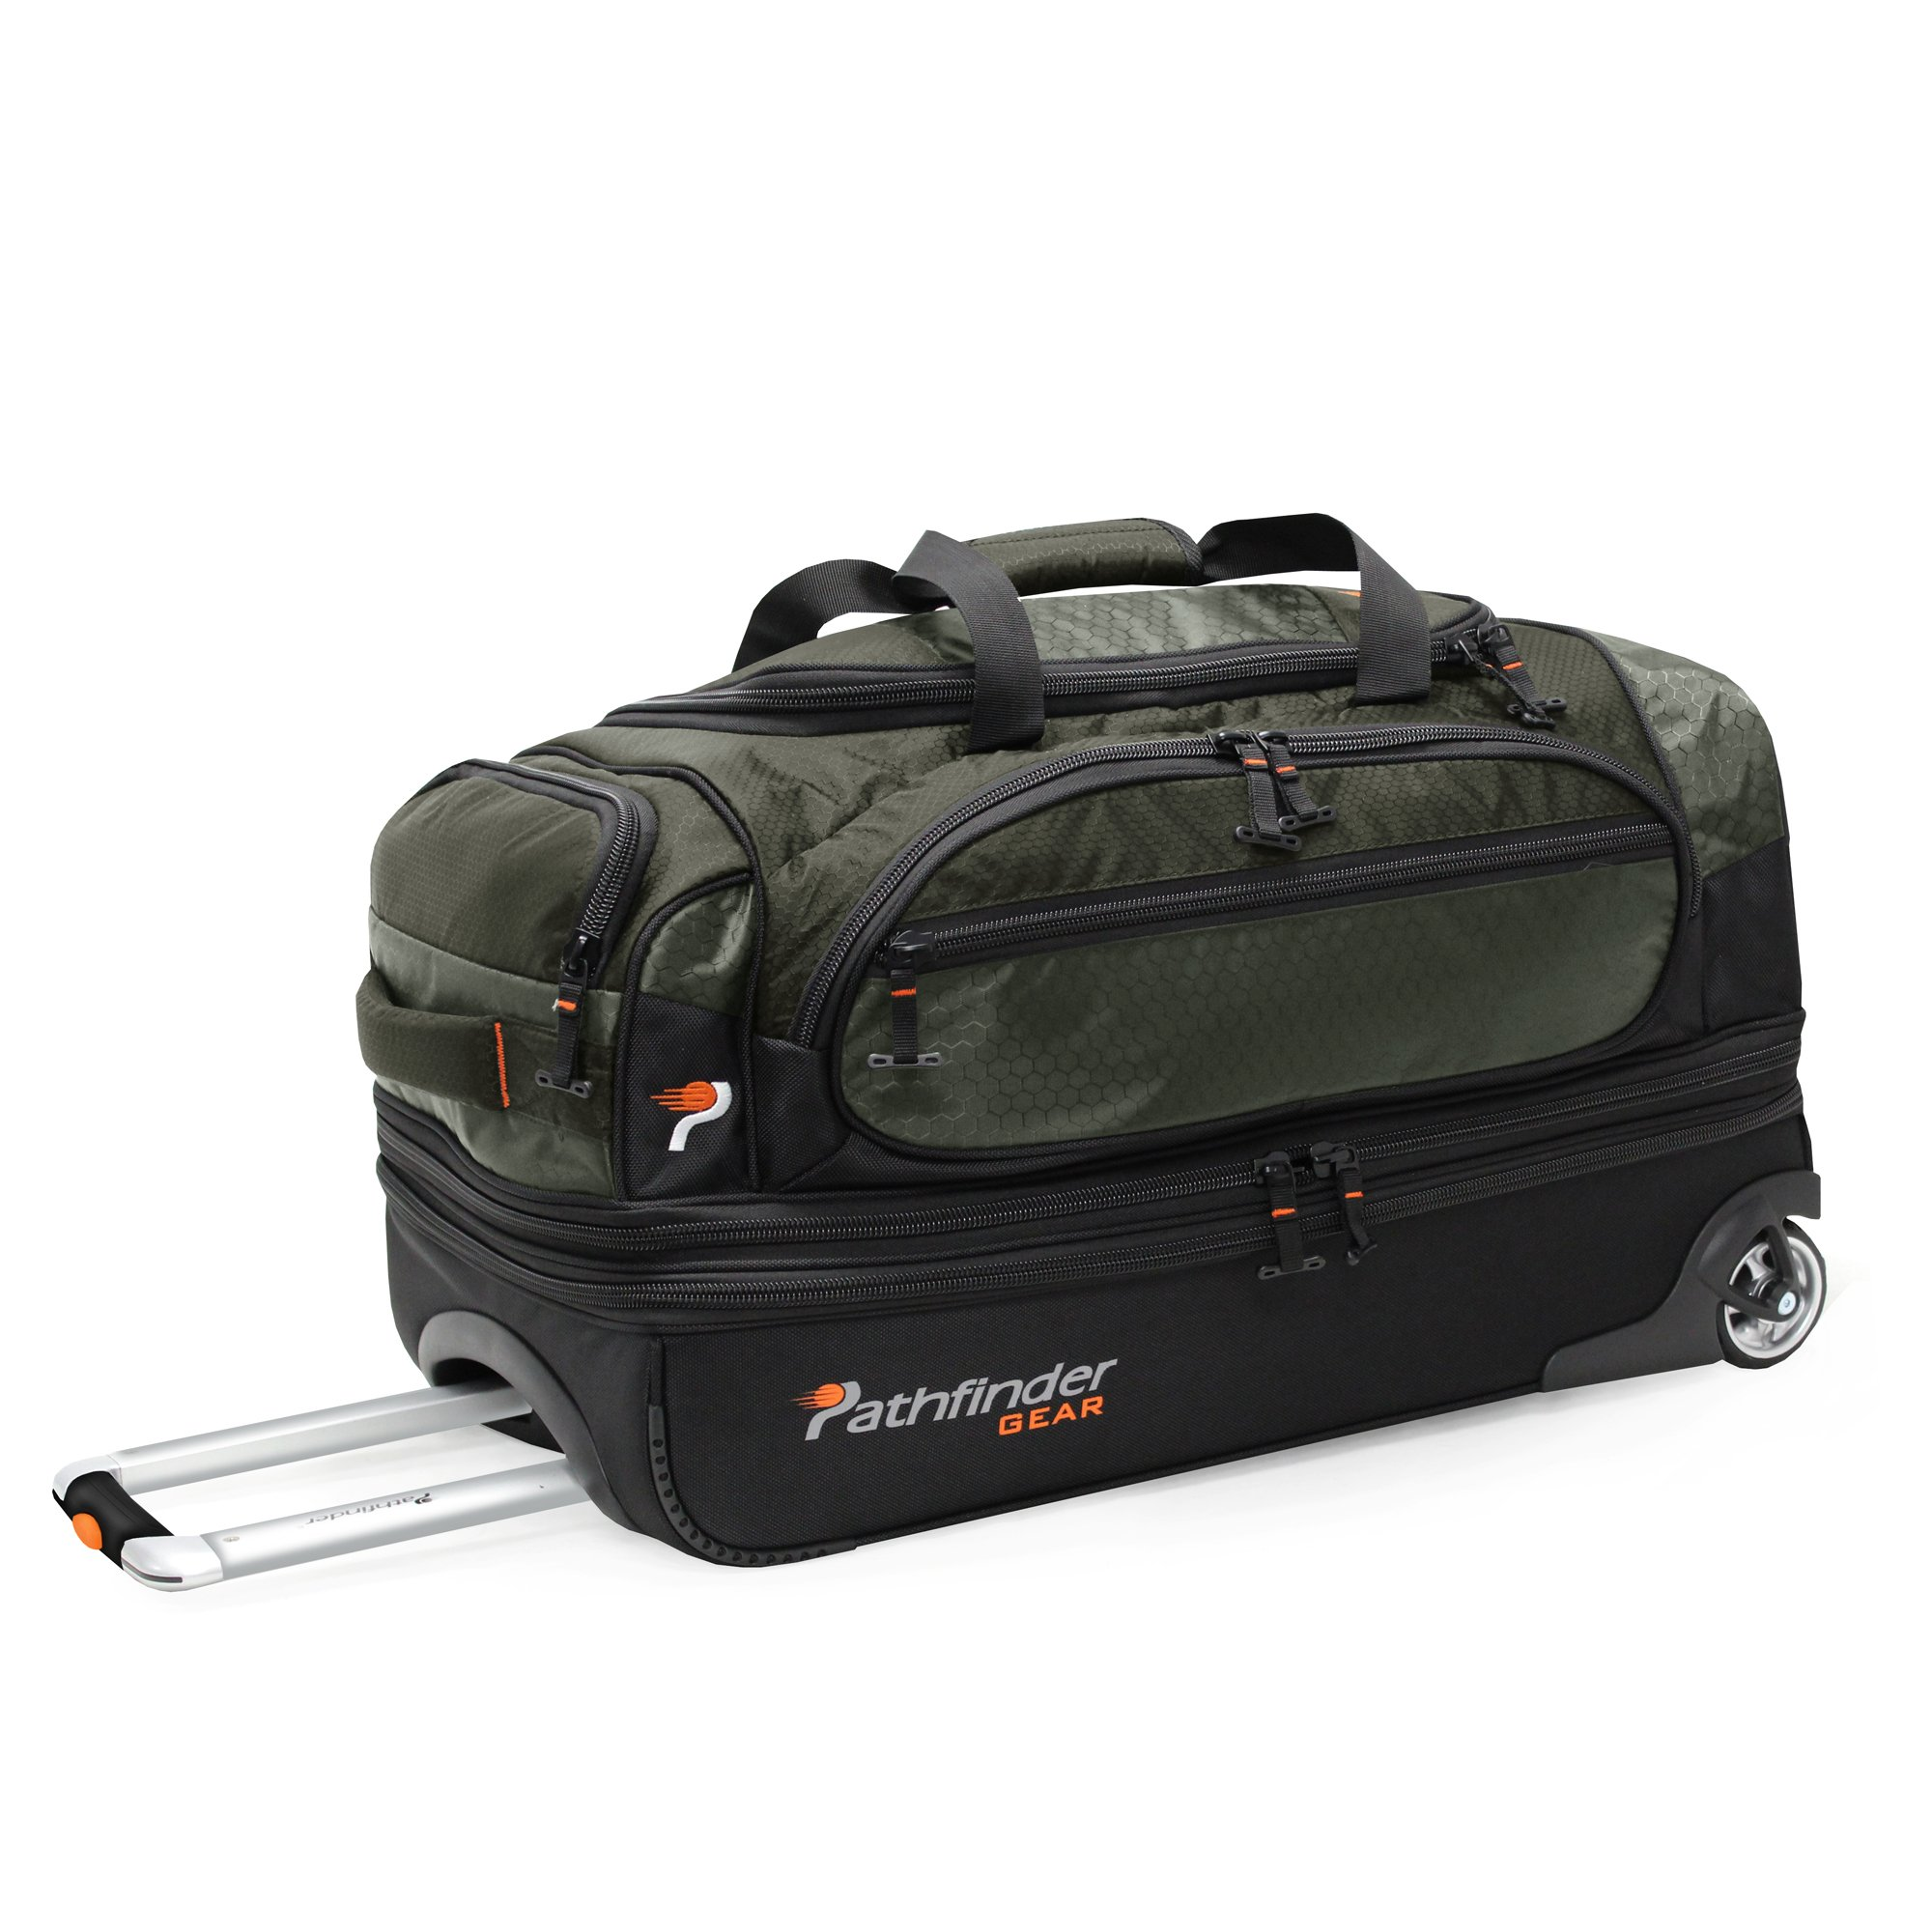 Pathfinder Gear 26 Inch Rolling Drop Bottom Duffel, Olive, One Size